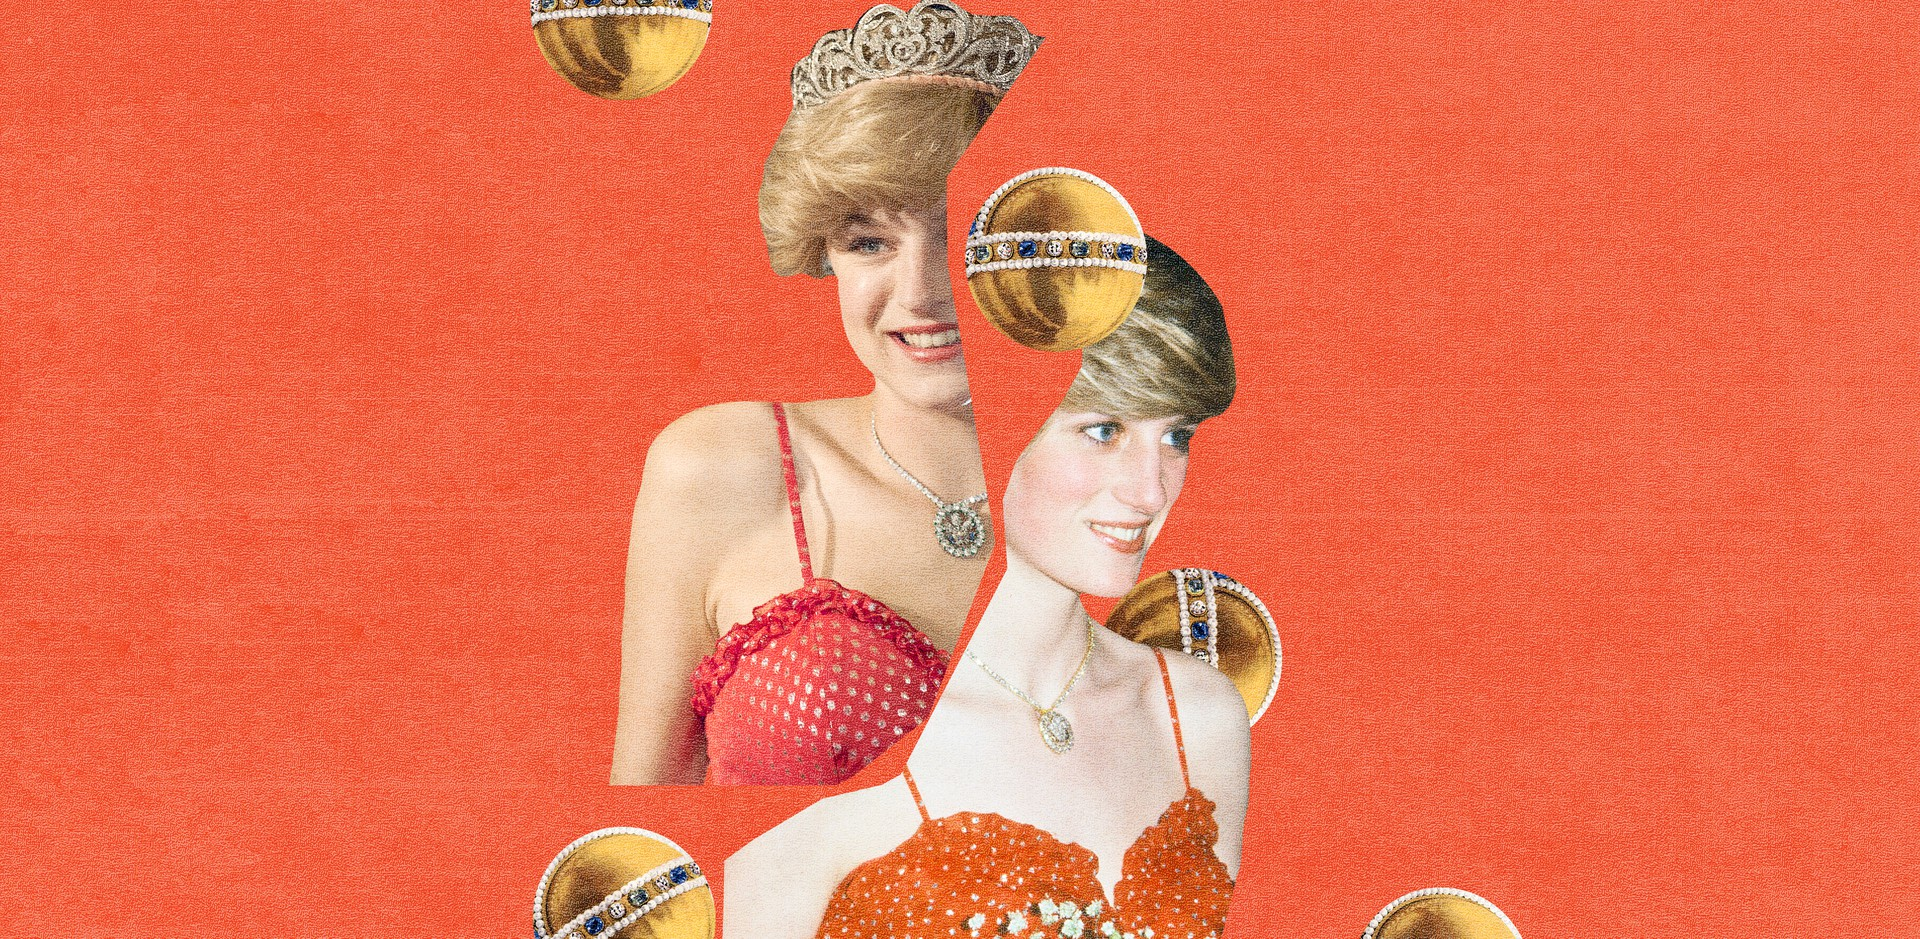 A collage of Diana, Princess of Wales, and Emma Corrin, the actress who plays her in The Crown